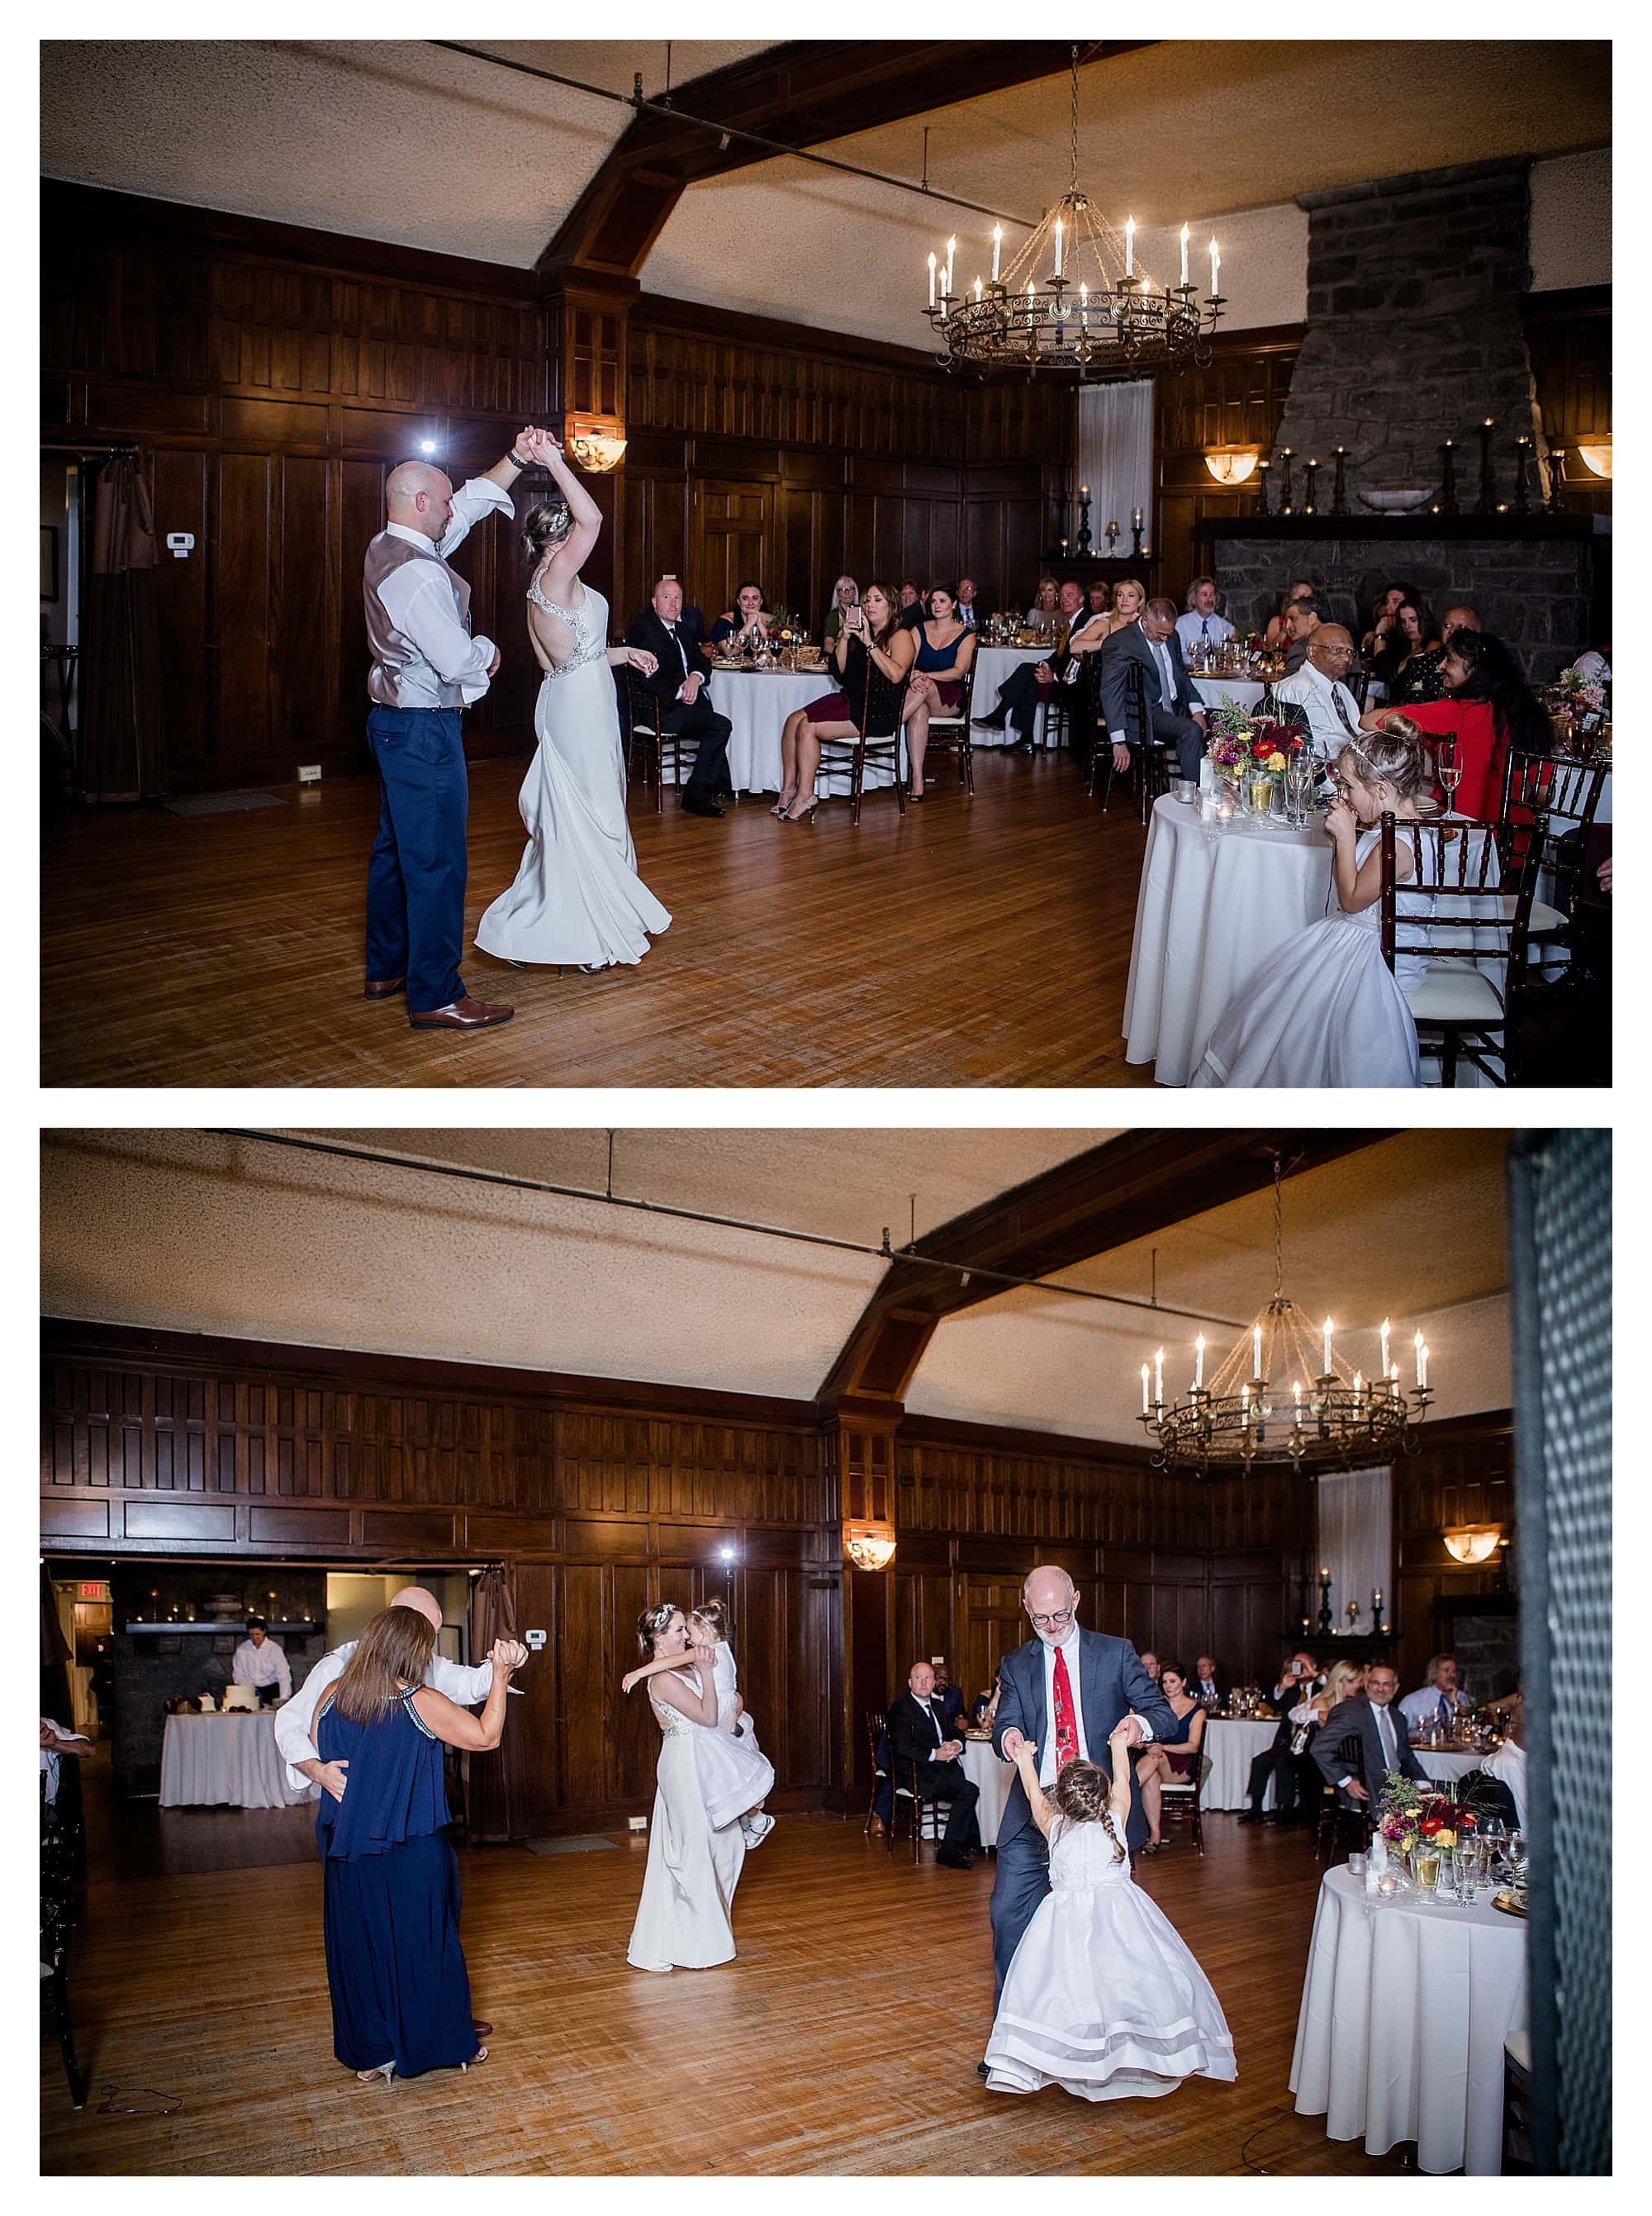 Bride and Groom dance with parents and kids